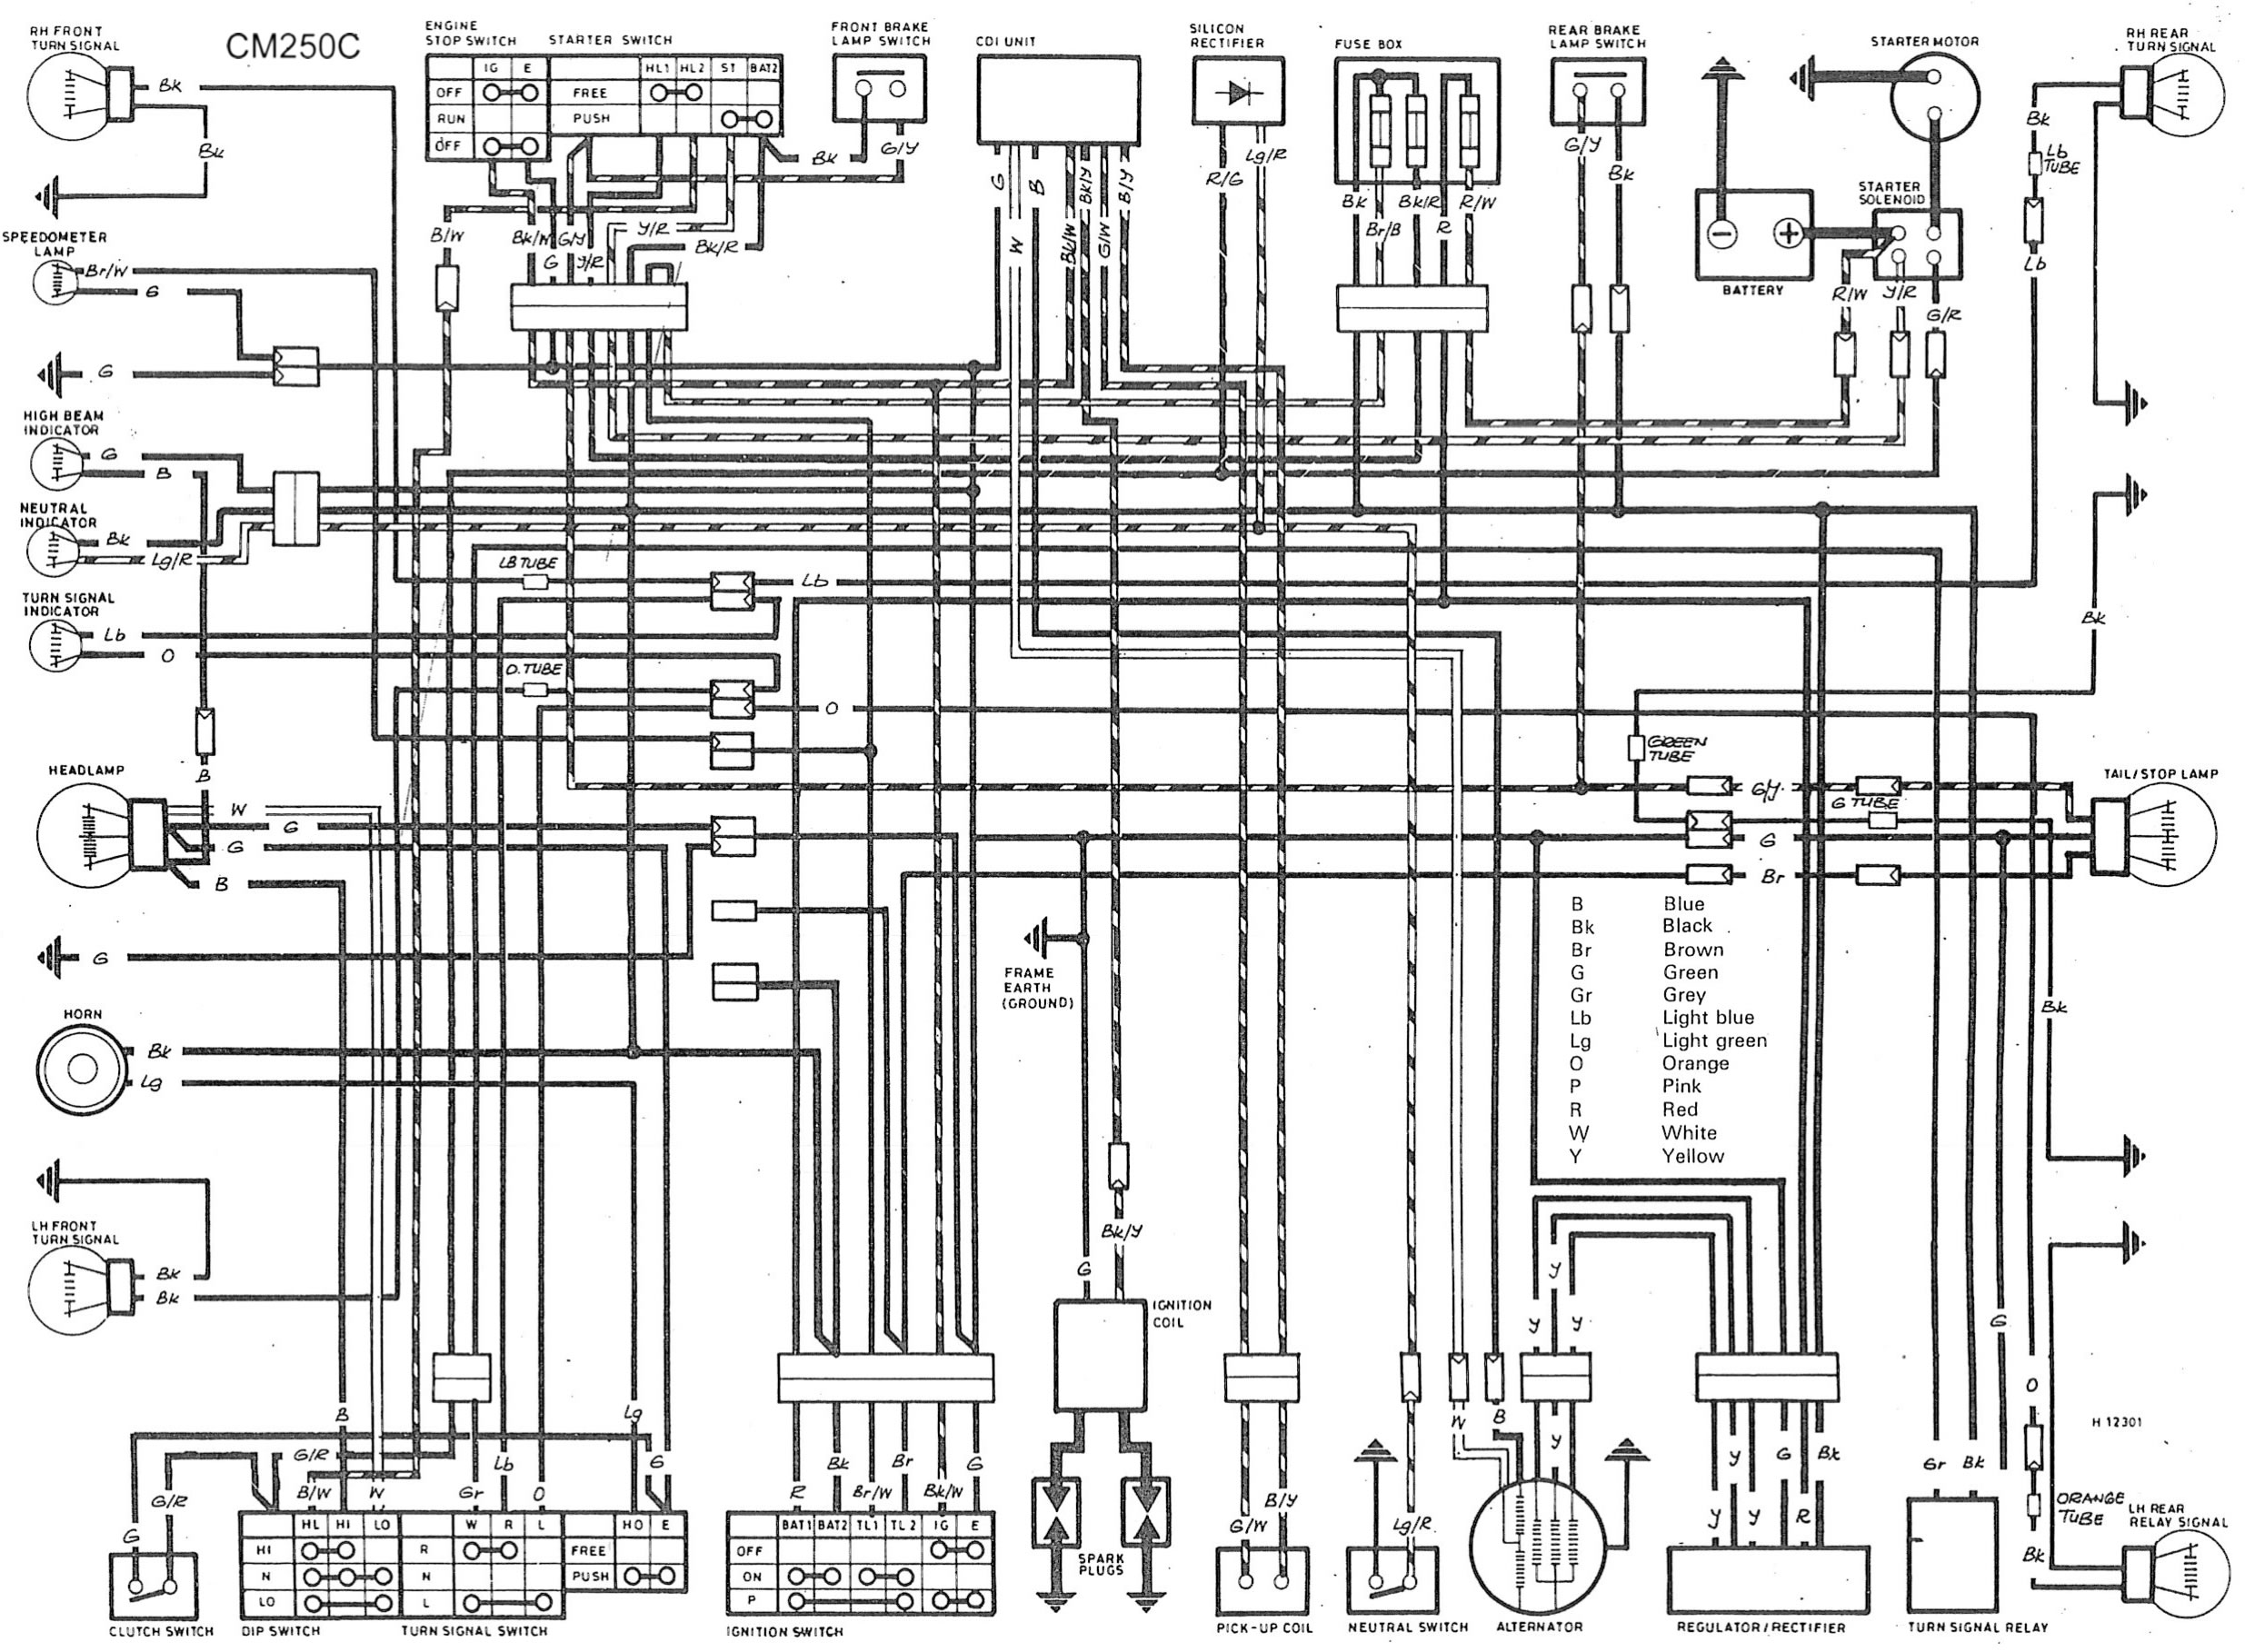 suzuki an 125 wiring diagram wiring diagramsuzuki gs550 wiring diogram wiring diagram